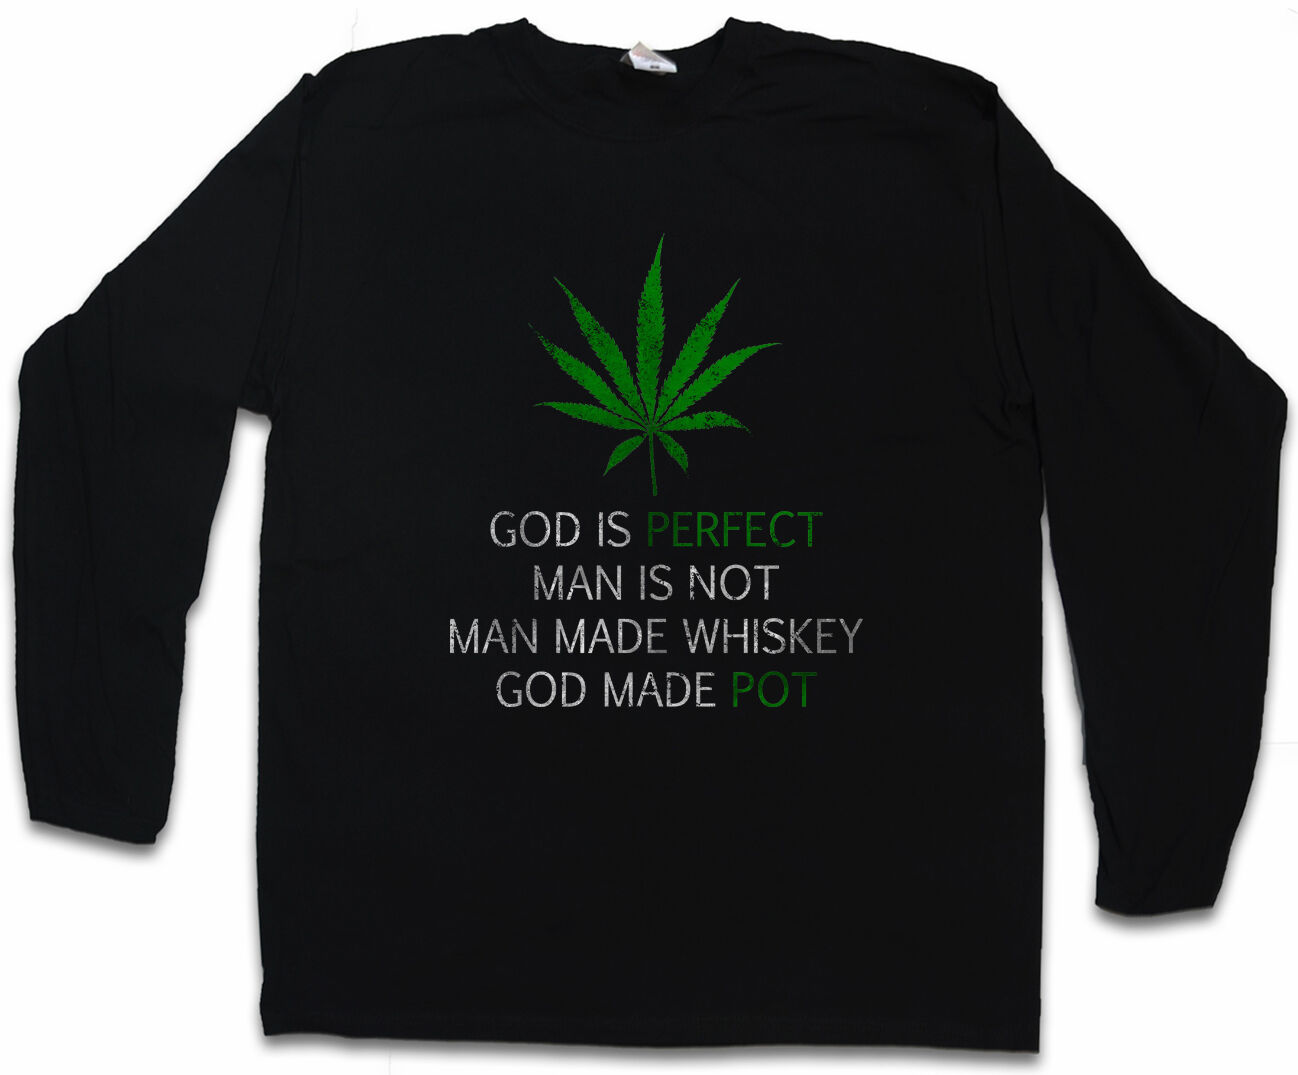 CANNABIS LEAF POEM LONG SLEEVE T-SHIRT Marihuana Weed Gras Ganja Marijuana 2